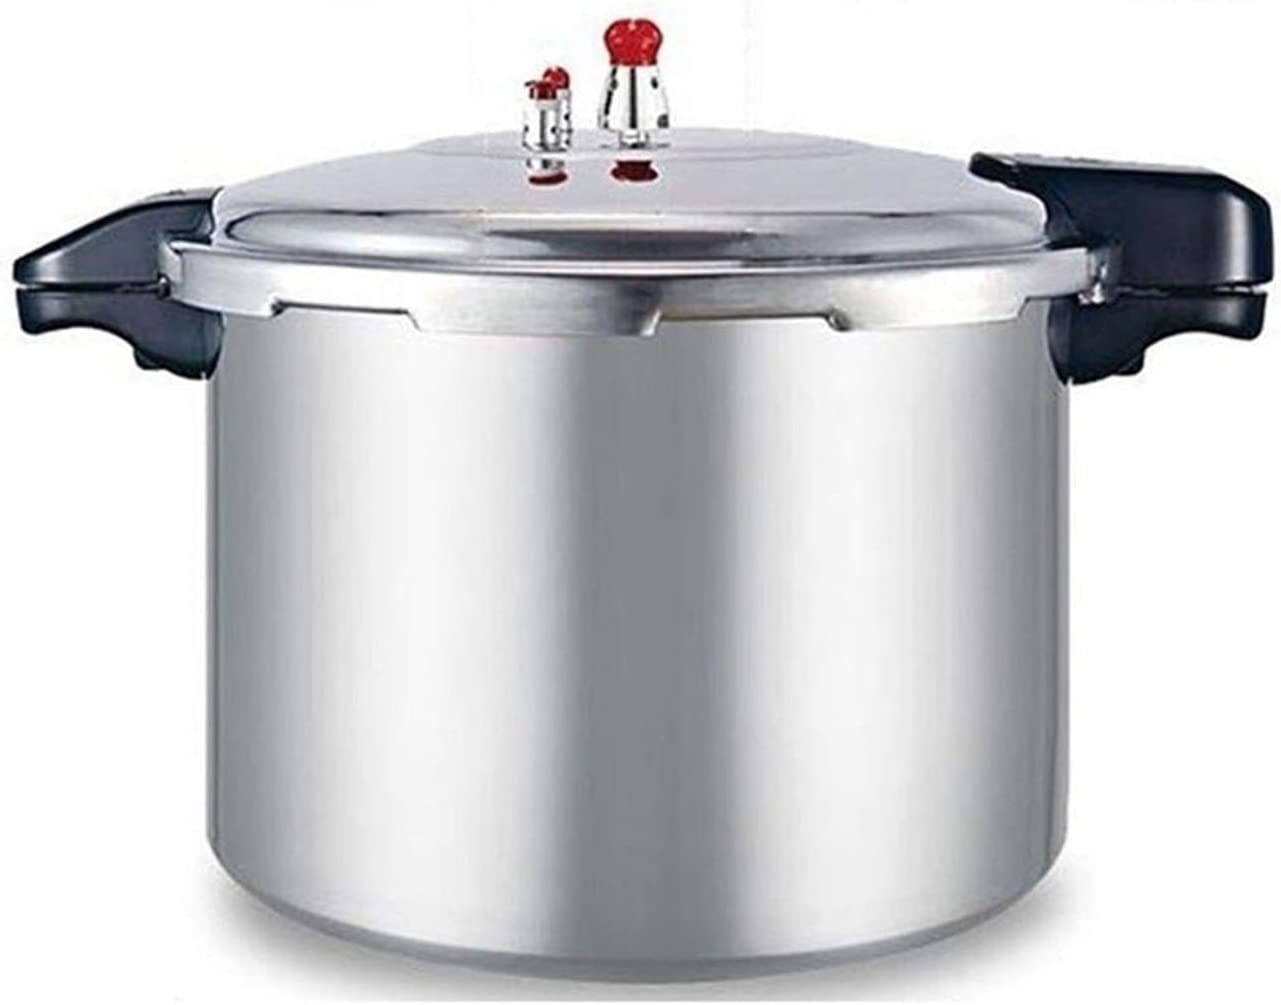 Commercial large-capacity pressure cooker thickened explosion-proof aluminum alloy pressure cooker cooking pot soup pot gas hotel restaurant large pot 21L, 23L (Color : Silver, Size : 23L)